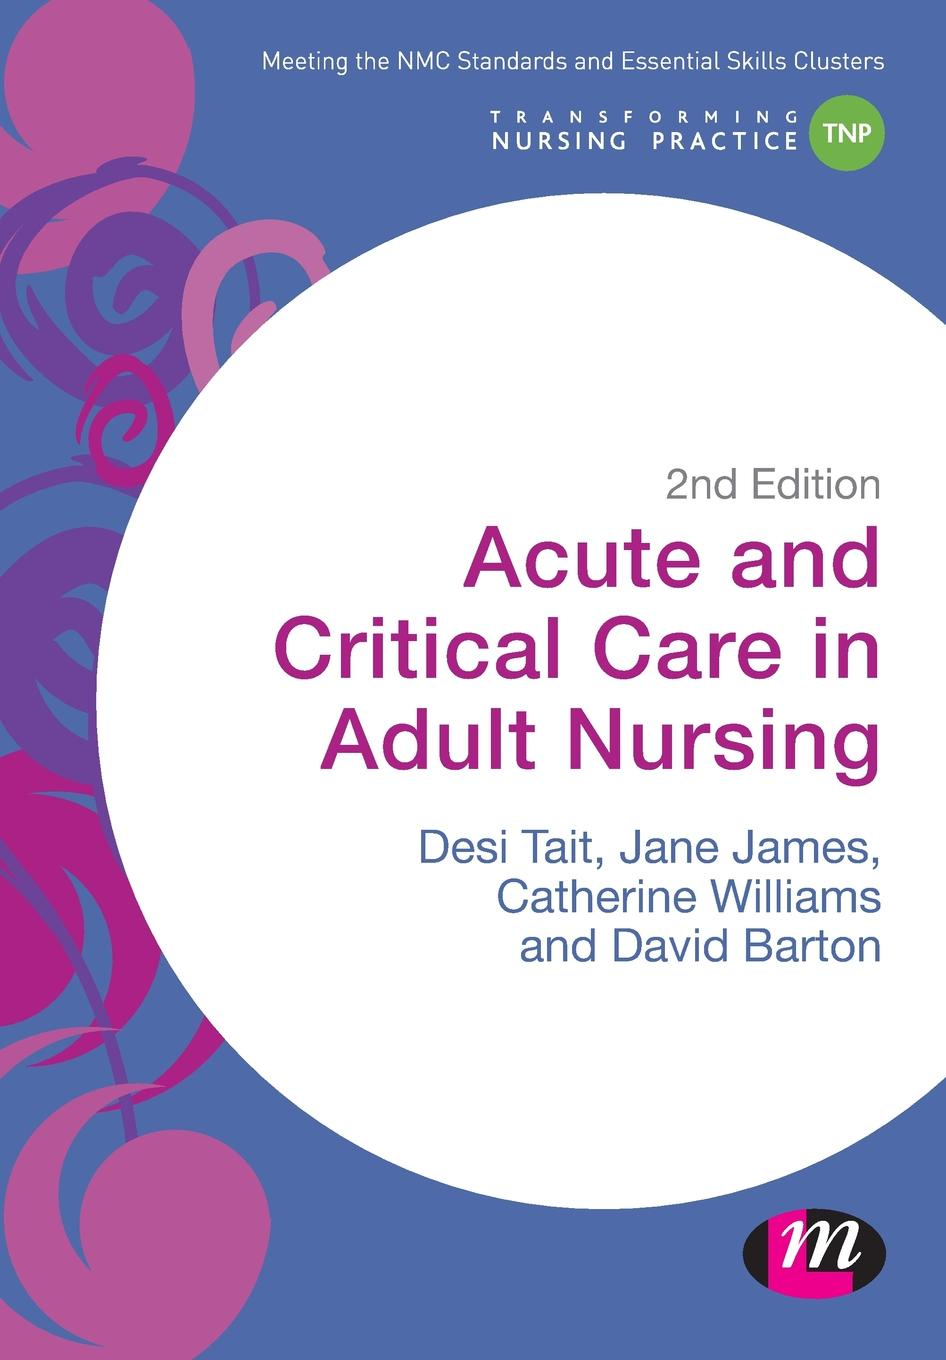 Desiree Tait, Jane James, Catherine Williams Acute and Critical Care in Adult Nursing